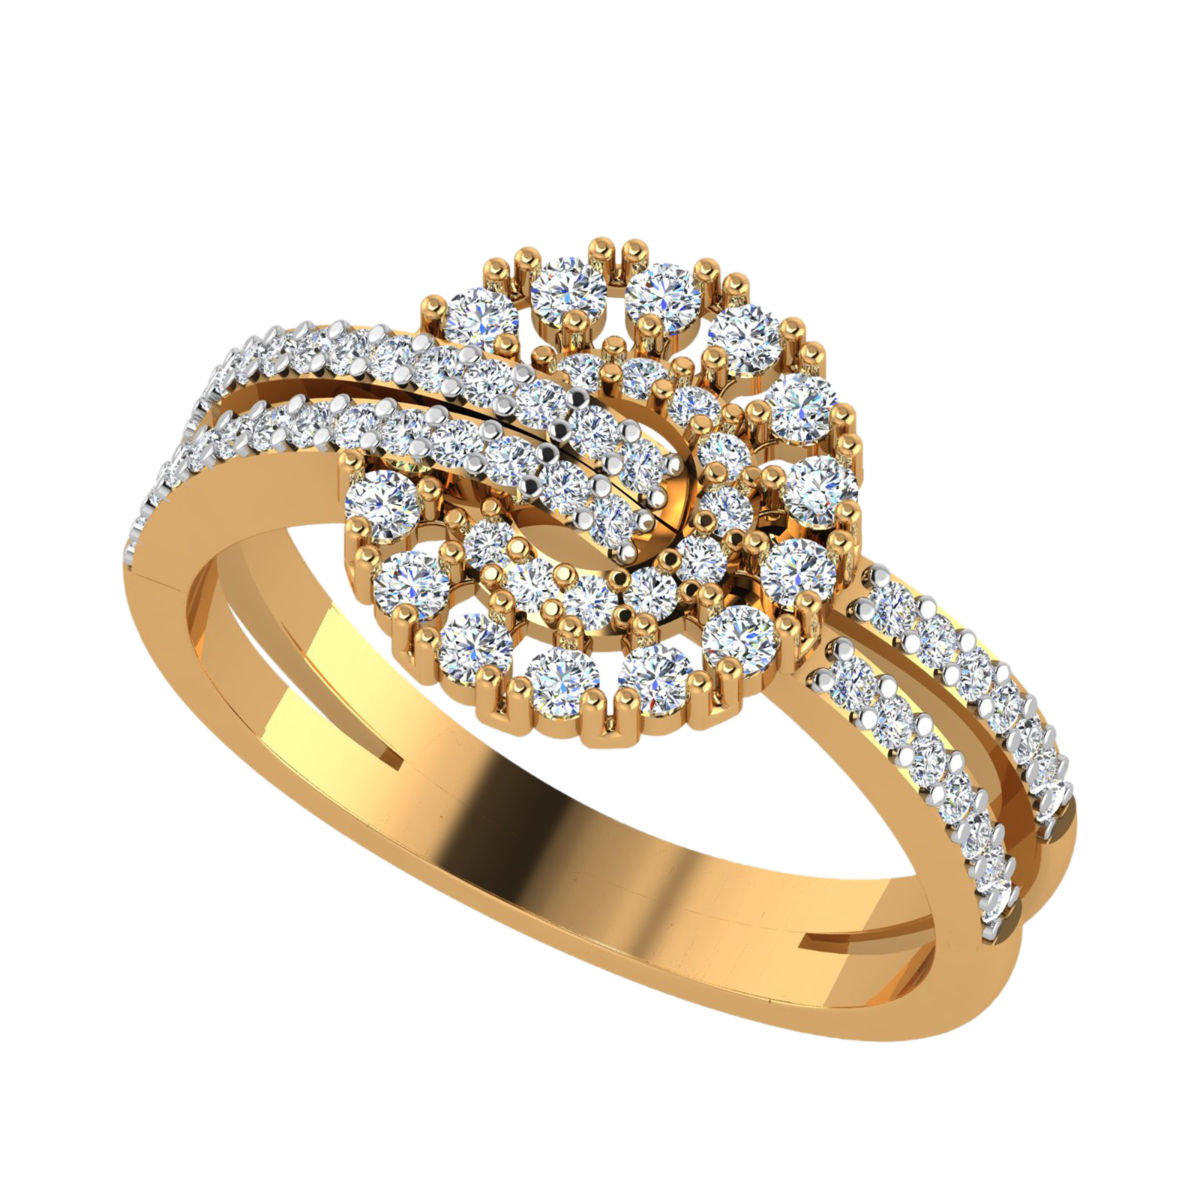 The Glow Flow Diamond Ring